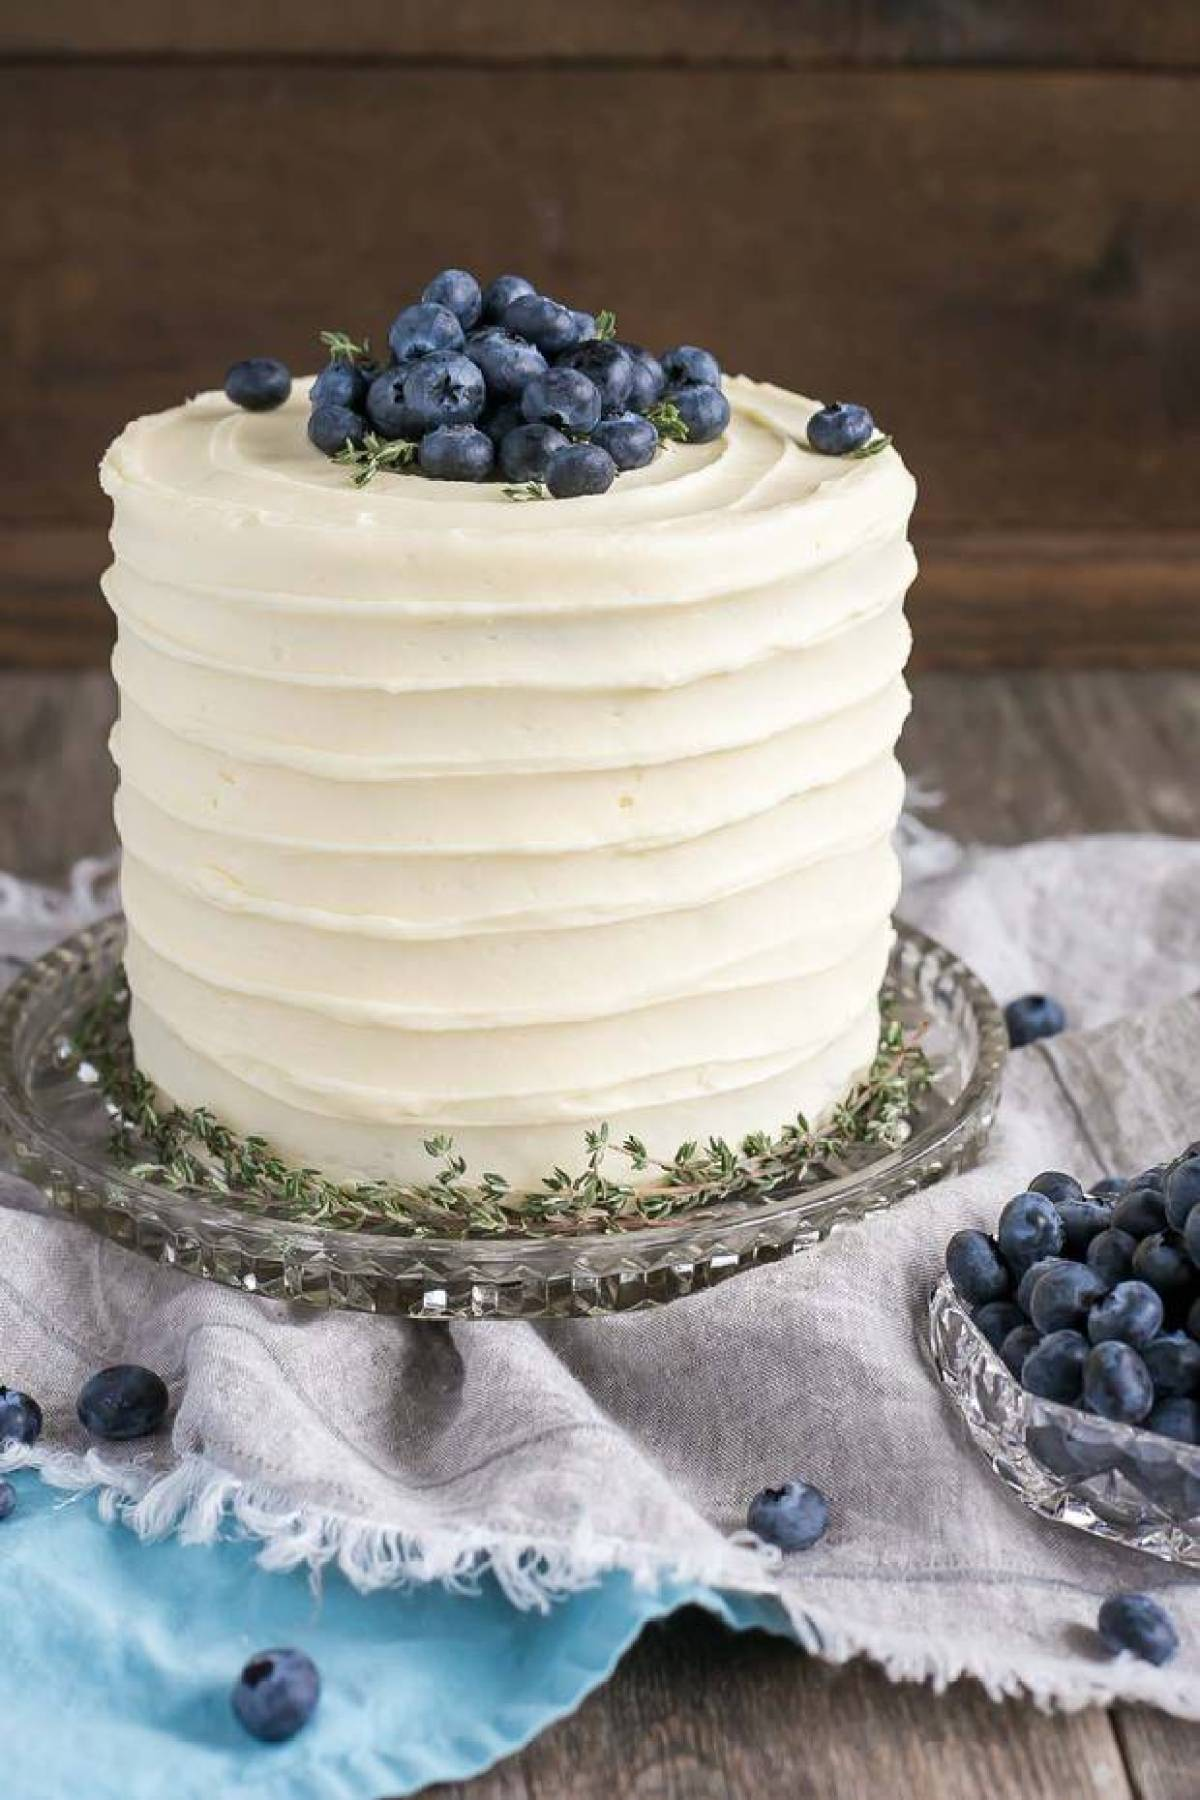 Blueberry Banana Cake with Cream Cheese Frosting